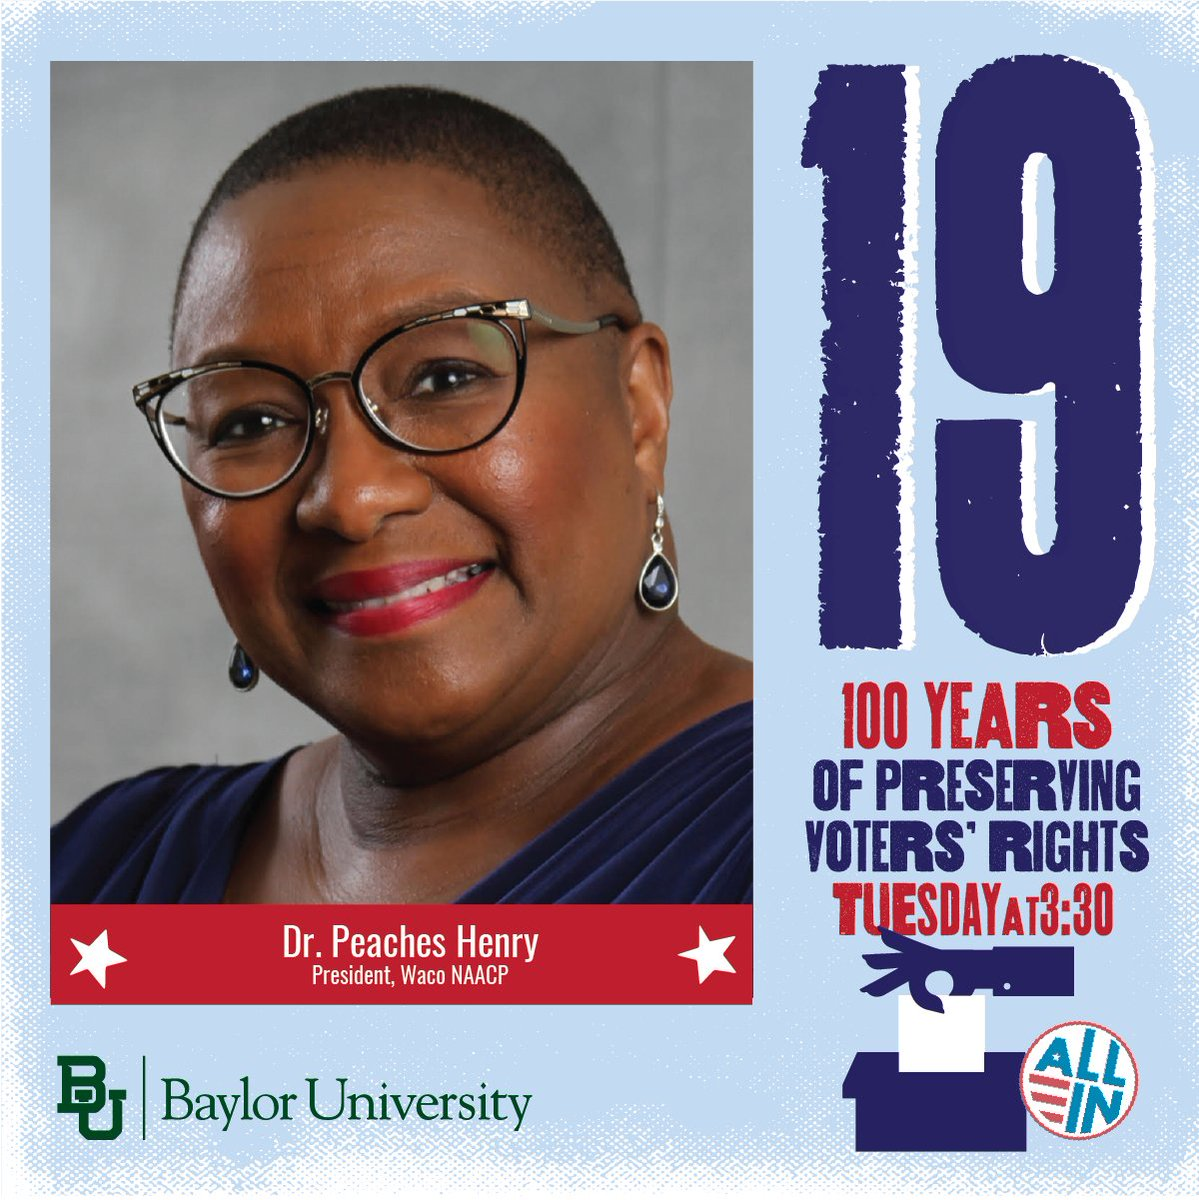 Got plans tomorrow at 3:30 p.m. CDT? Cancel them so you can hear Dr. Peaches Henry, President of Waco's #NAACP, talk about the #19thAmendment and voter's rights as part of a virtual panel discussion: https://t.co/IfJDSDD43G. https://t.co/O3nGMNsWak